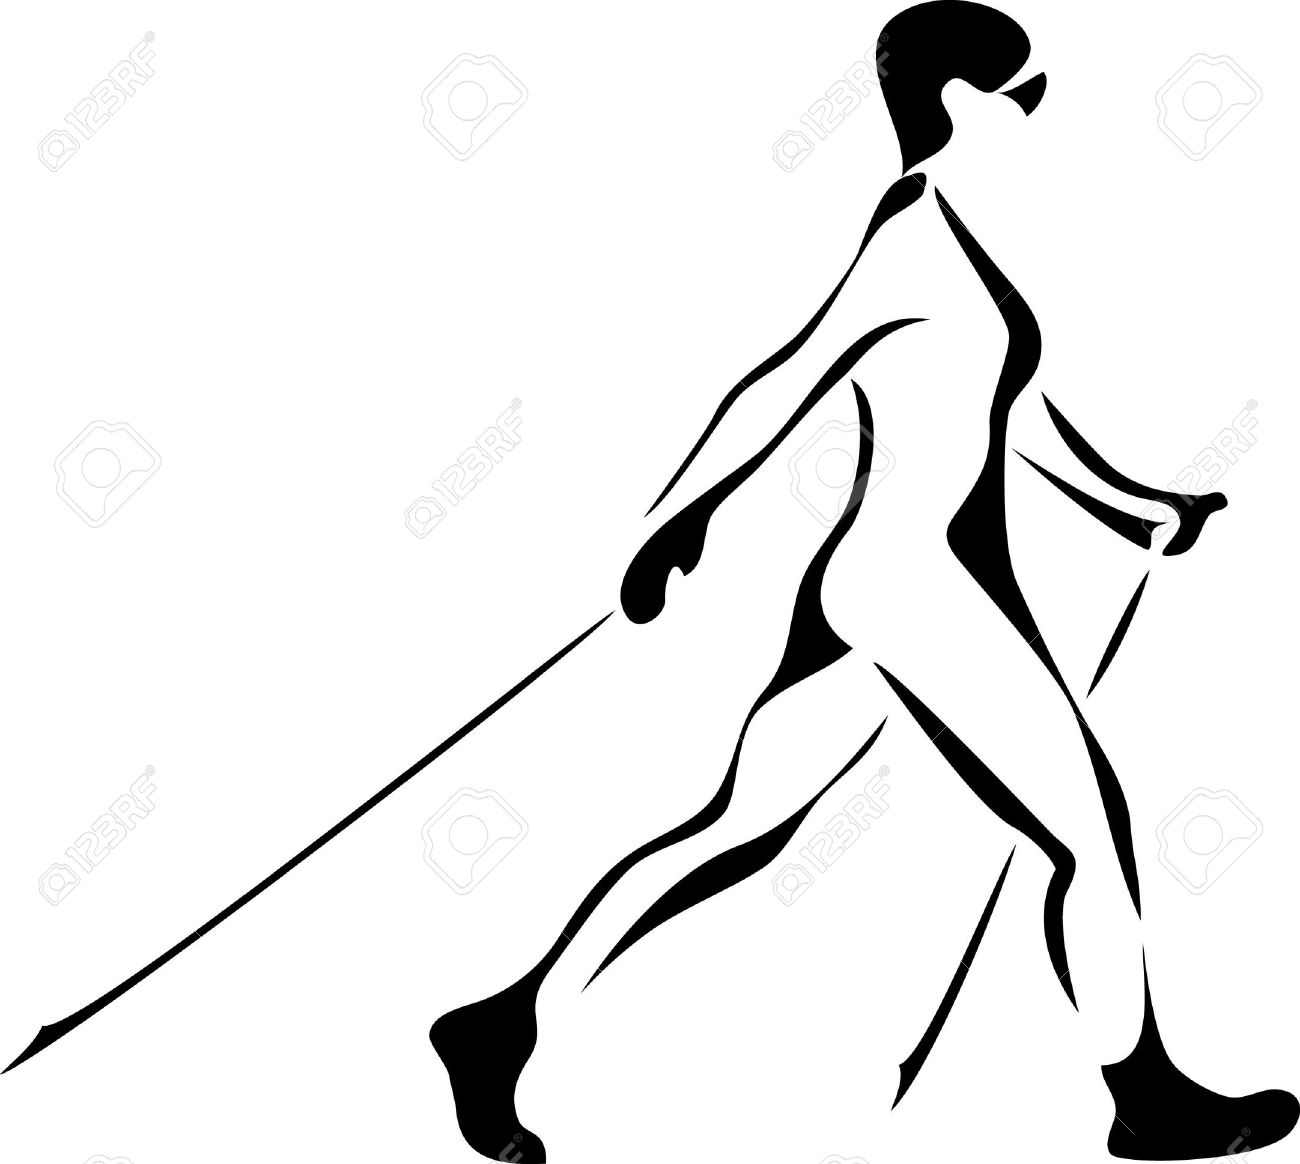 Clipart nordic walking kostenlos royalty free library Clipart nordic walking - ClipartFest royalty free library